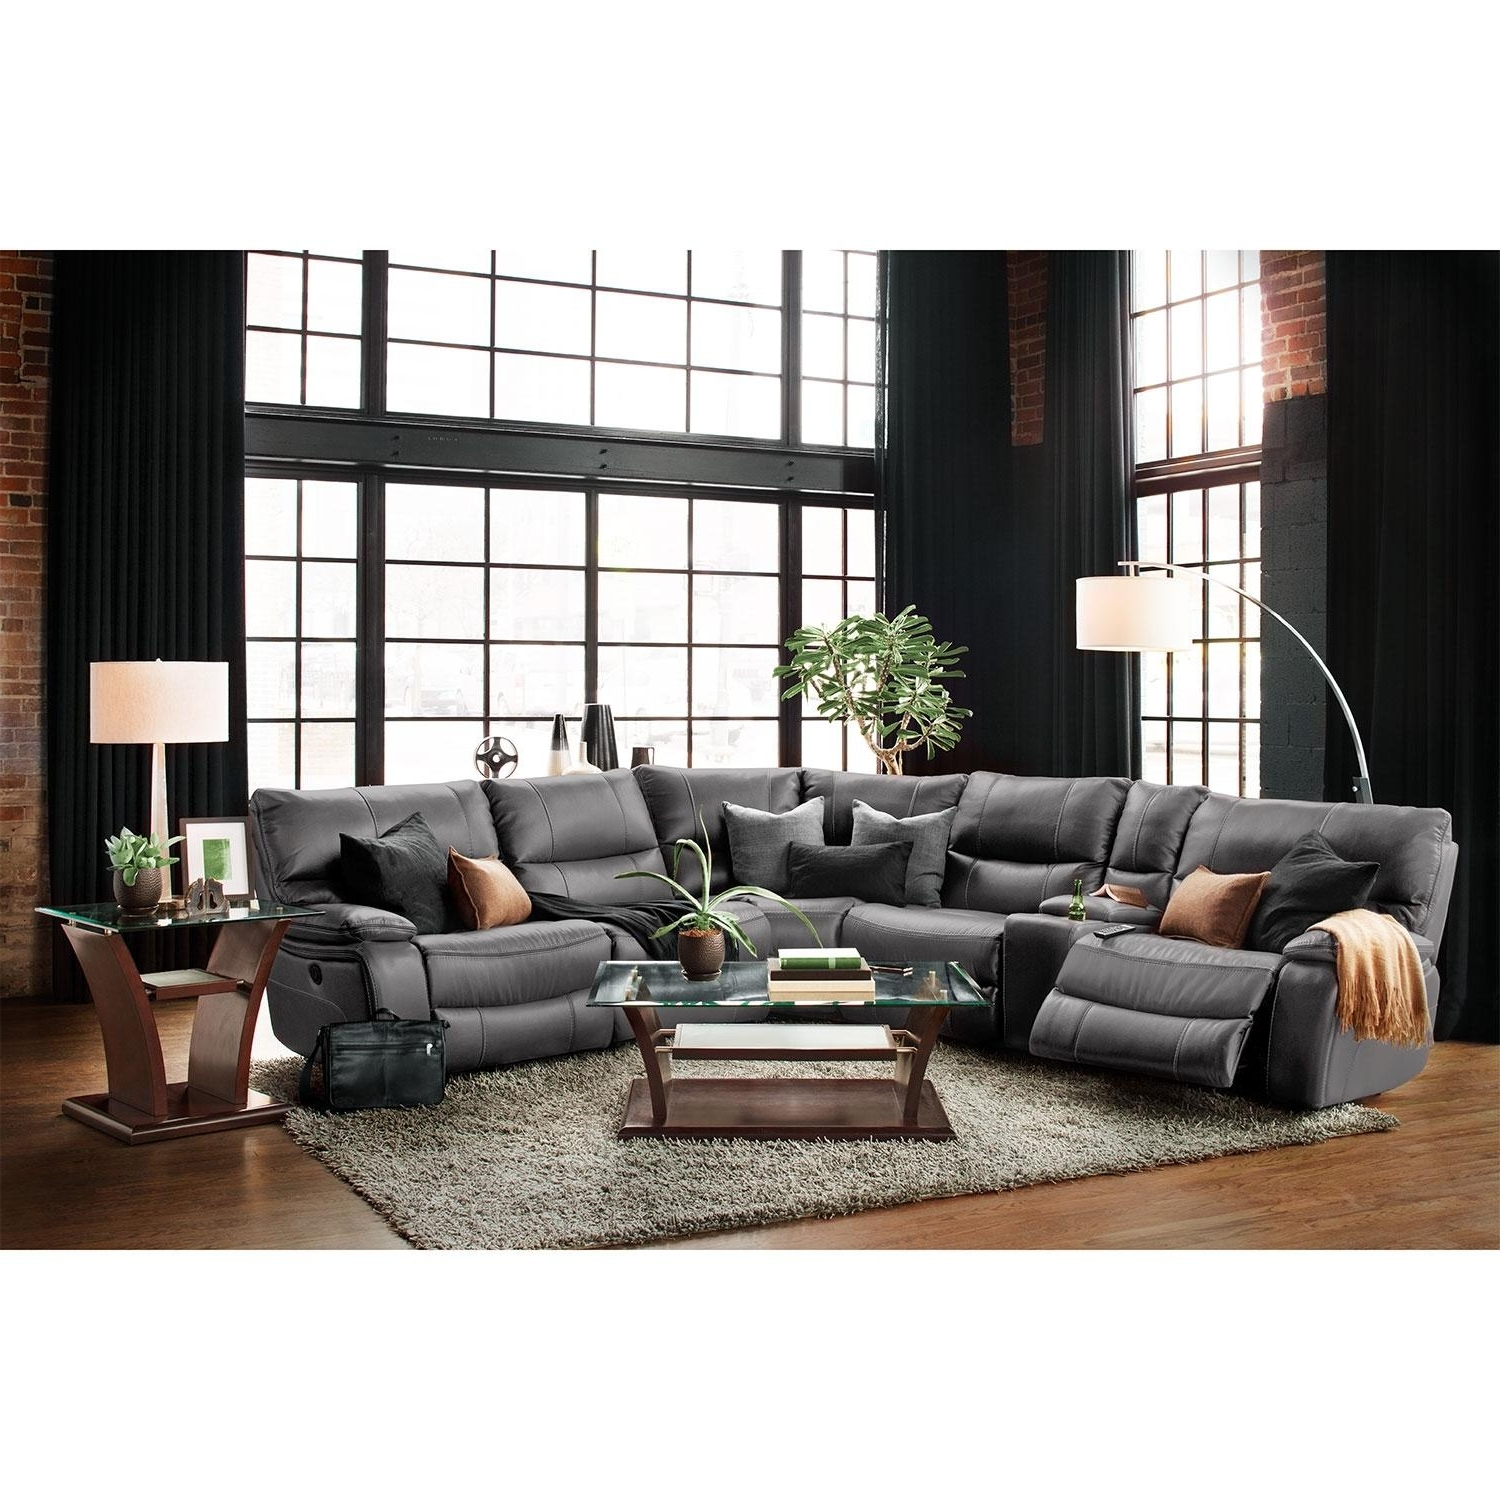 Furniture : Sectional Couch Costco Best Of La Z Boy Aspen Seven Throughout Recent Victoria Bc Sectional Sofas (View 7 of 20)